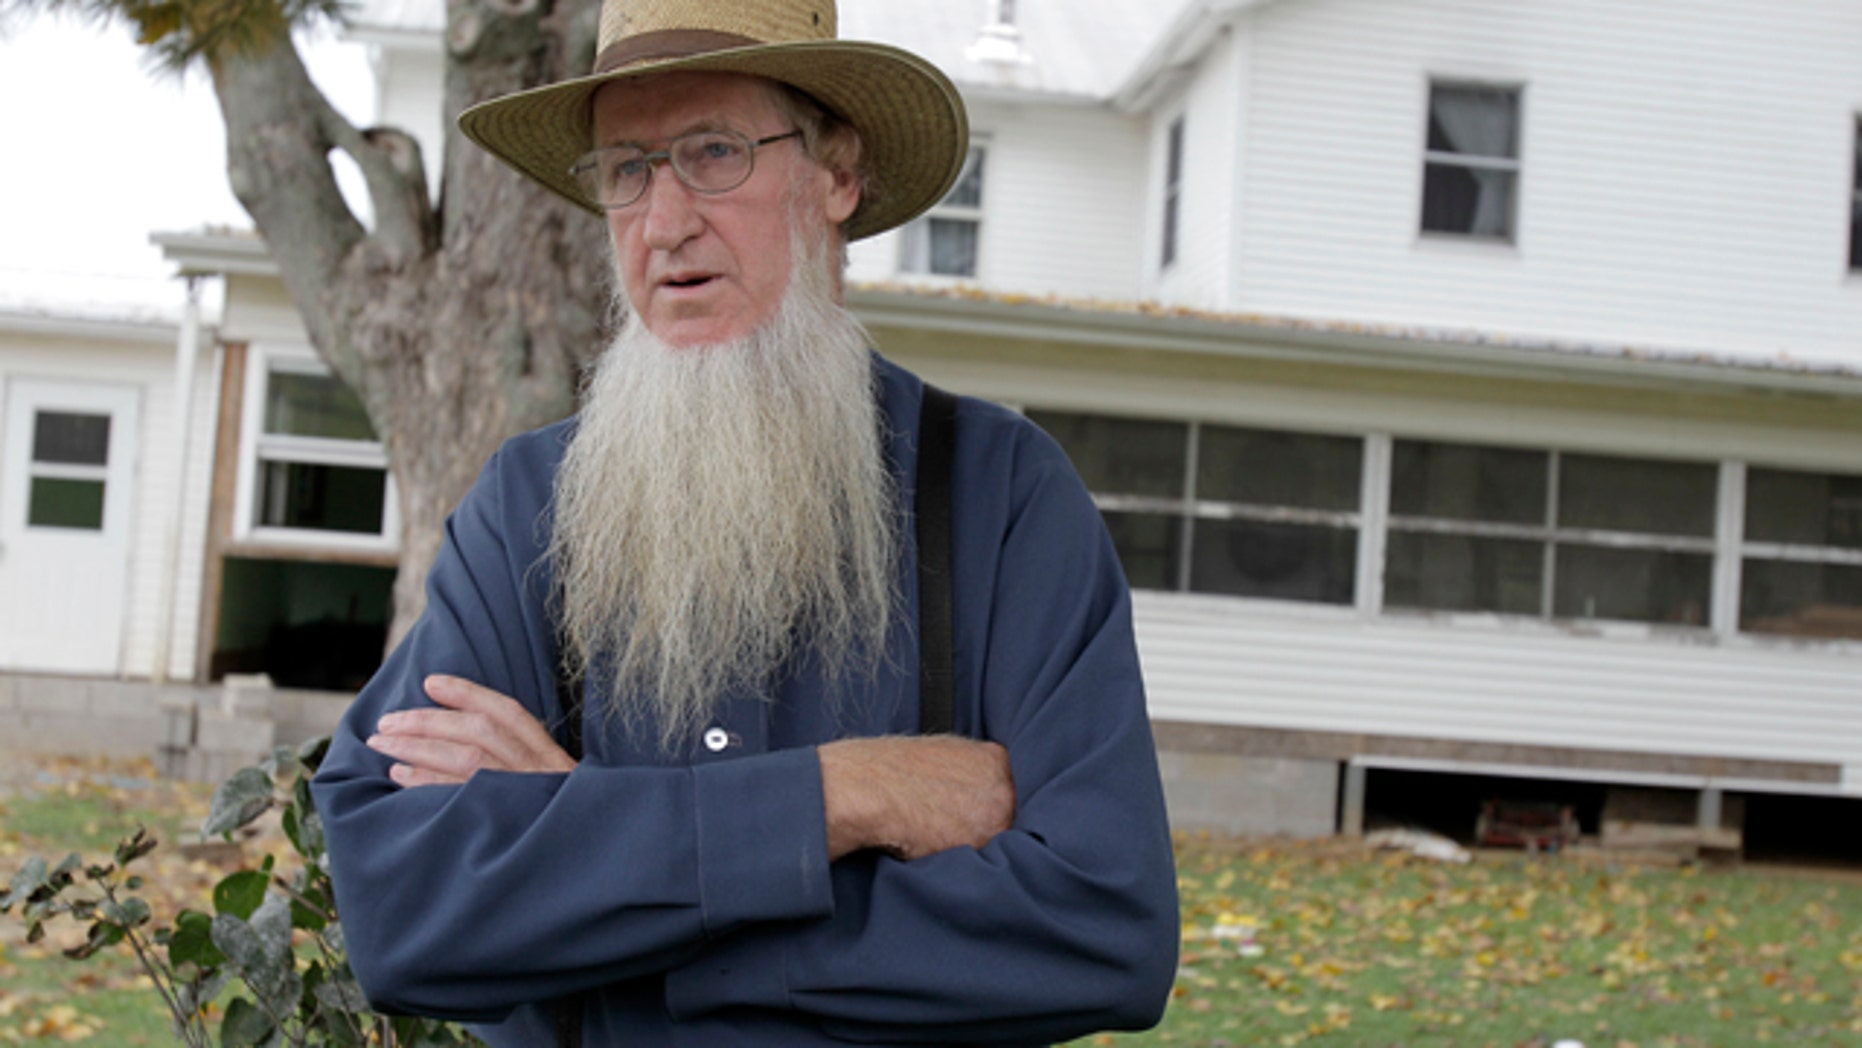 FILE 2011: Sam Mullet stands in front of his Bergholz, Ohio home. Mullet is the alleged ringleader in beard-cutting attacks.